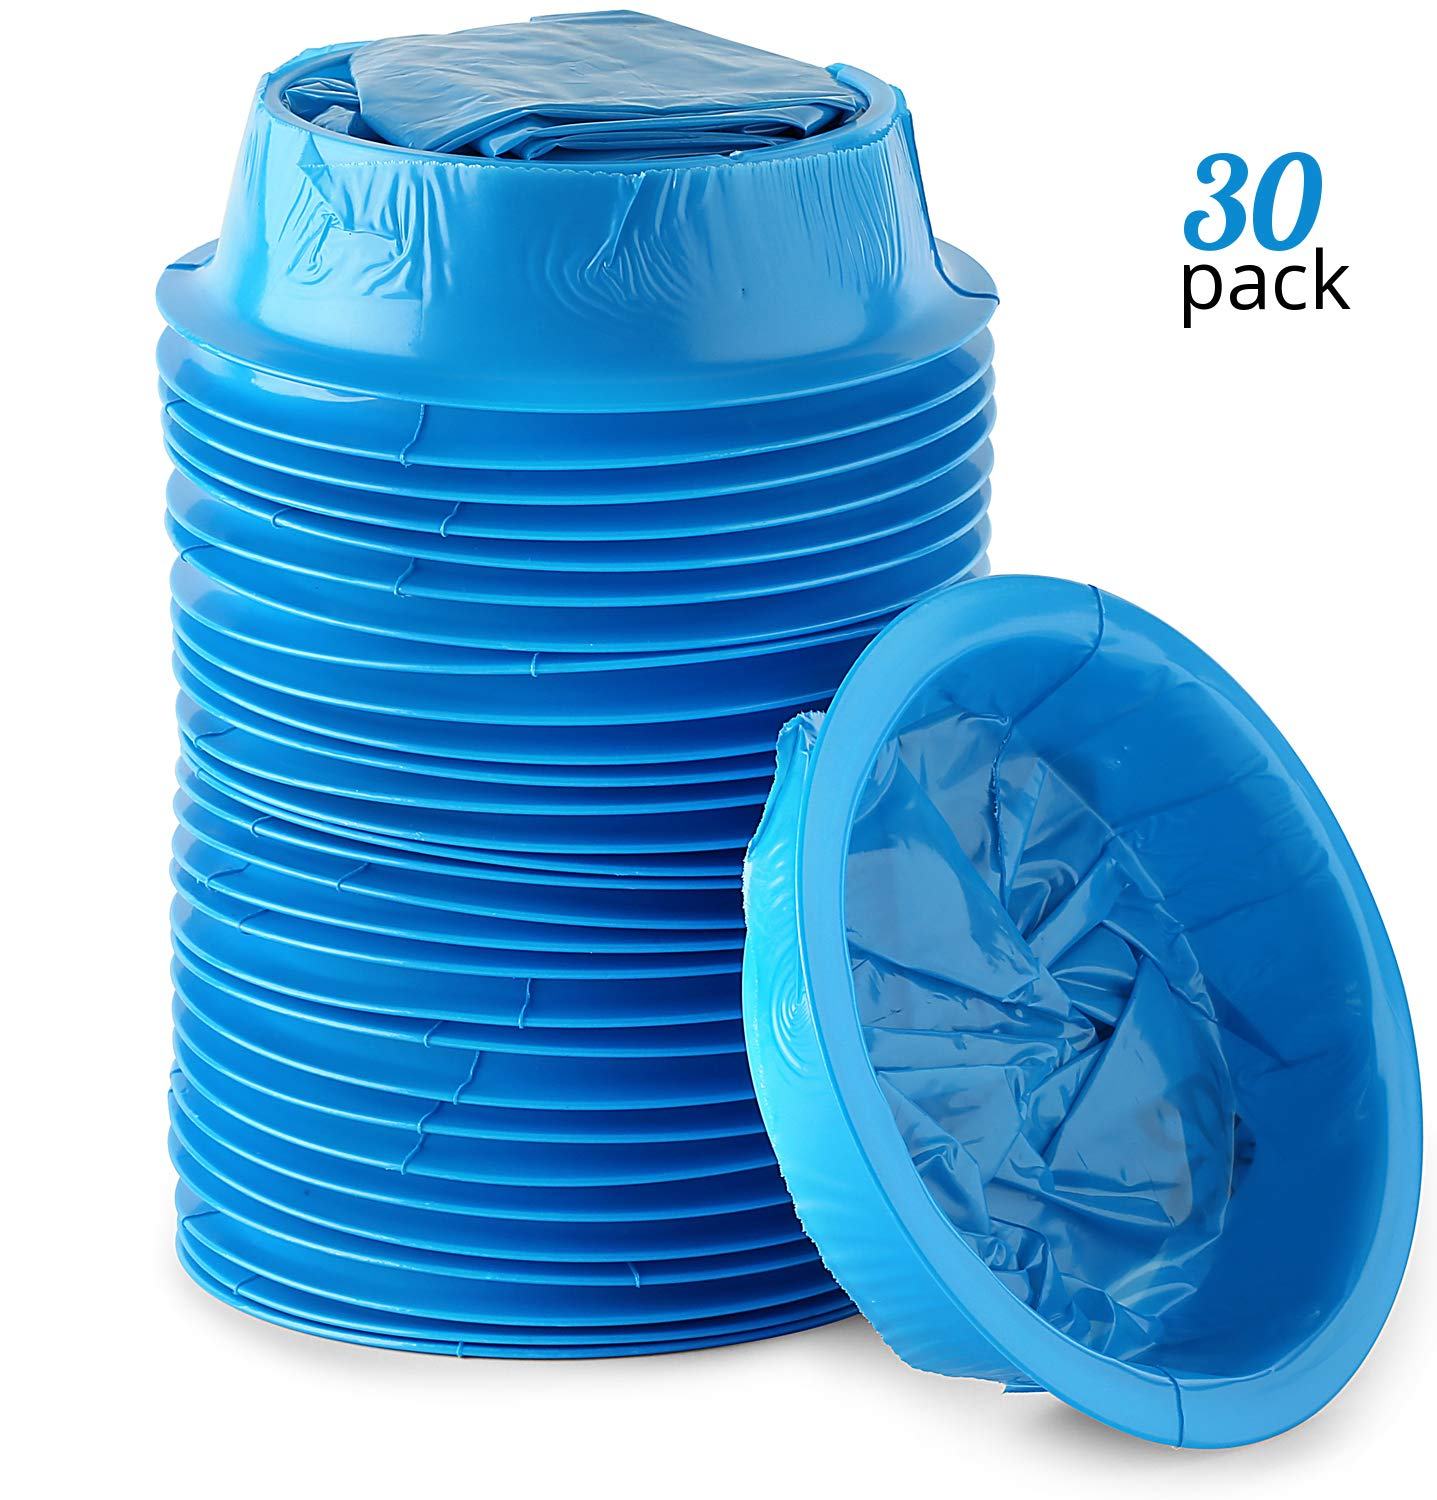 Premium Emesis Vomit Bags 30-Pack   Disposable Blue Leakproof Vomiting Bag Set for Car, Motion, Sea & Air Sickness   Convenient Ring Closure System  Perfect for Pregnant Women& Sick Children